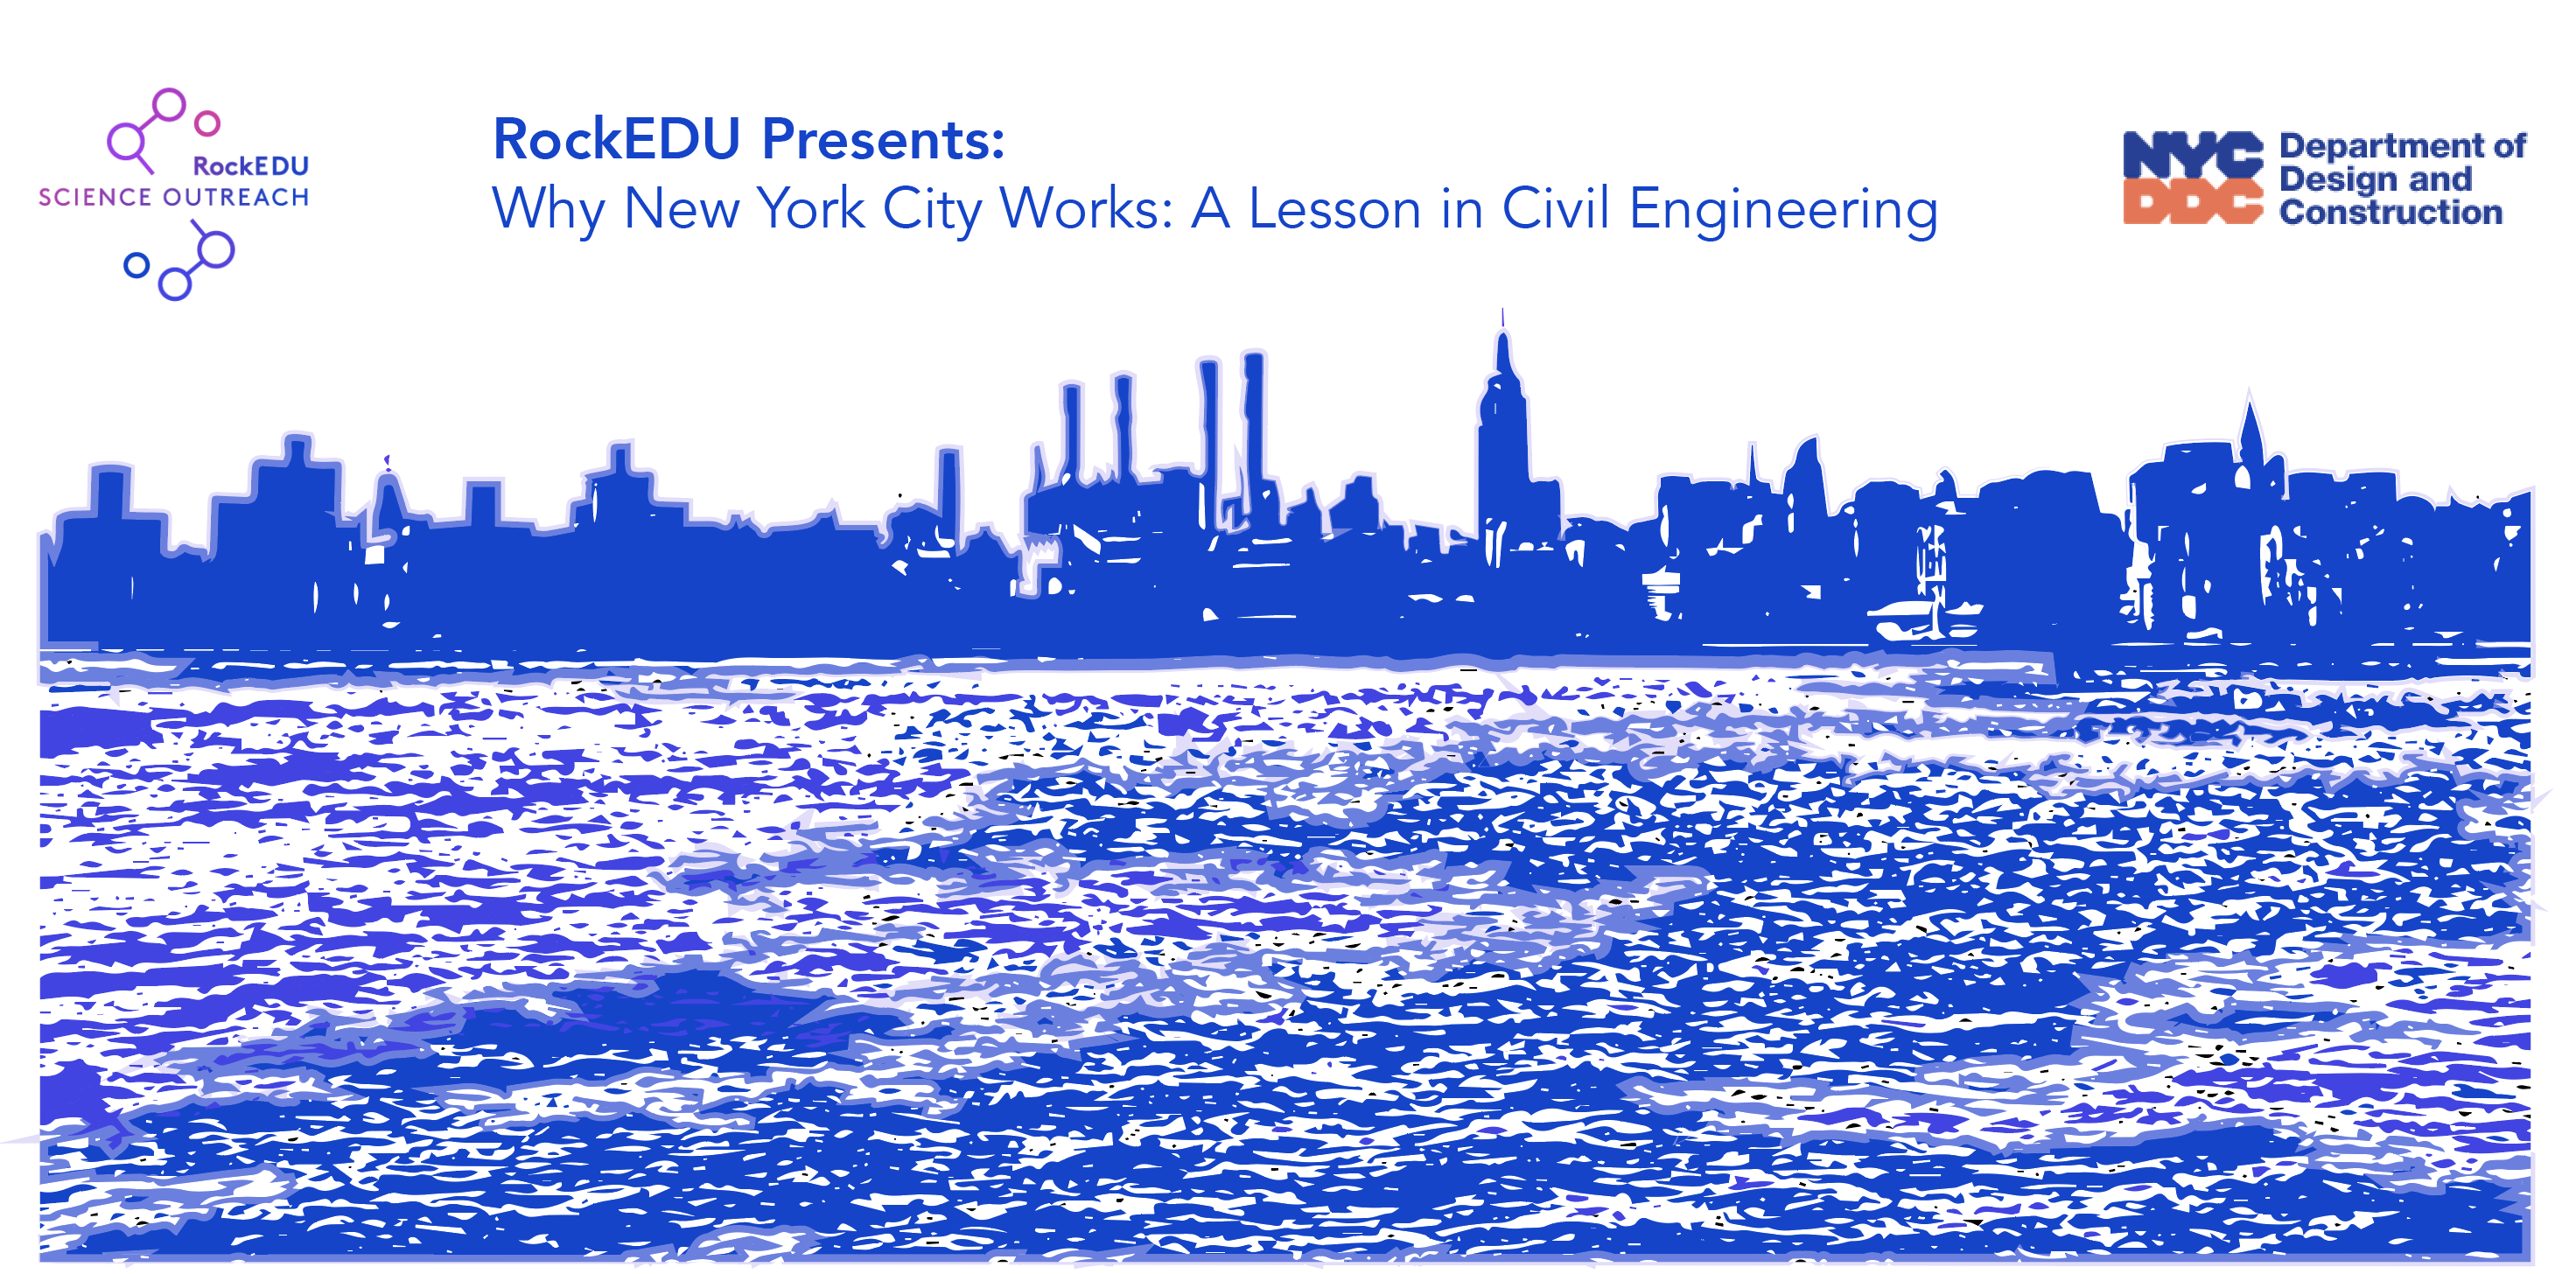 RockEDU Presents Civil Engineering